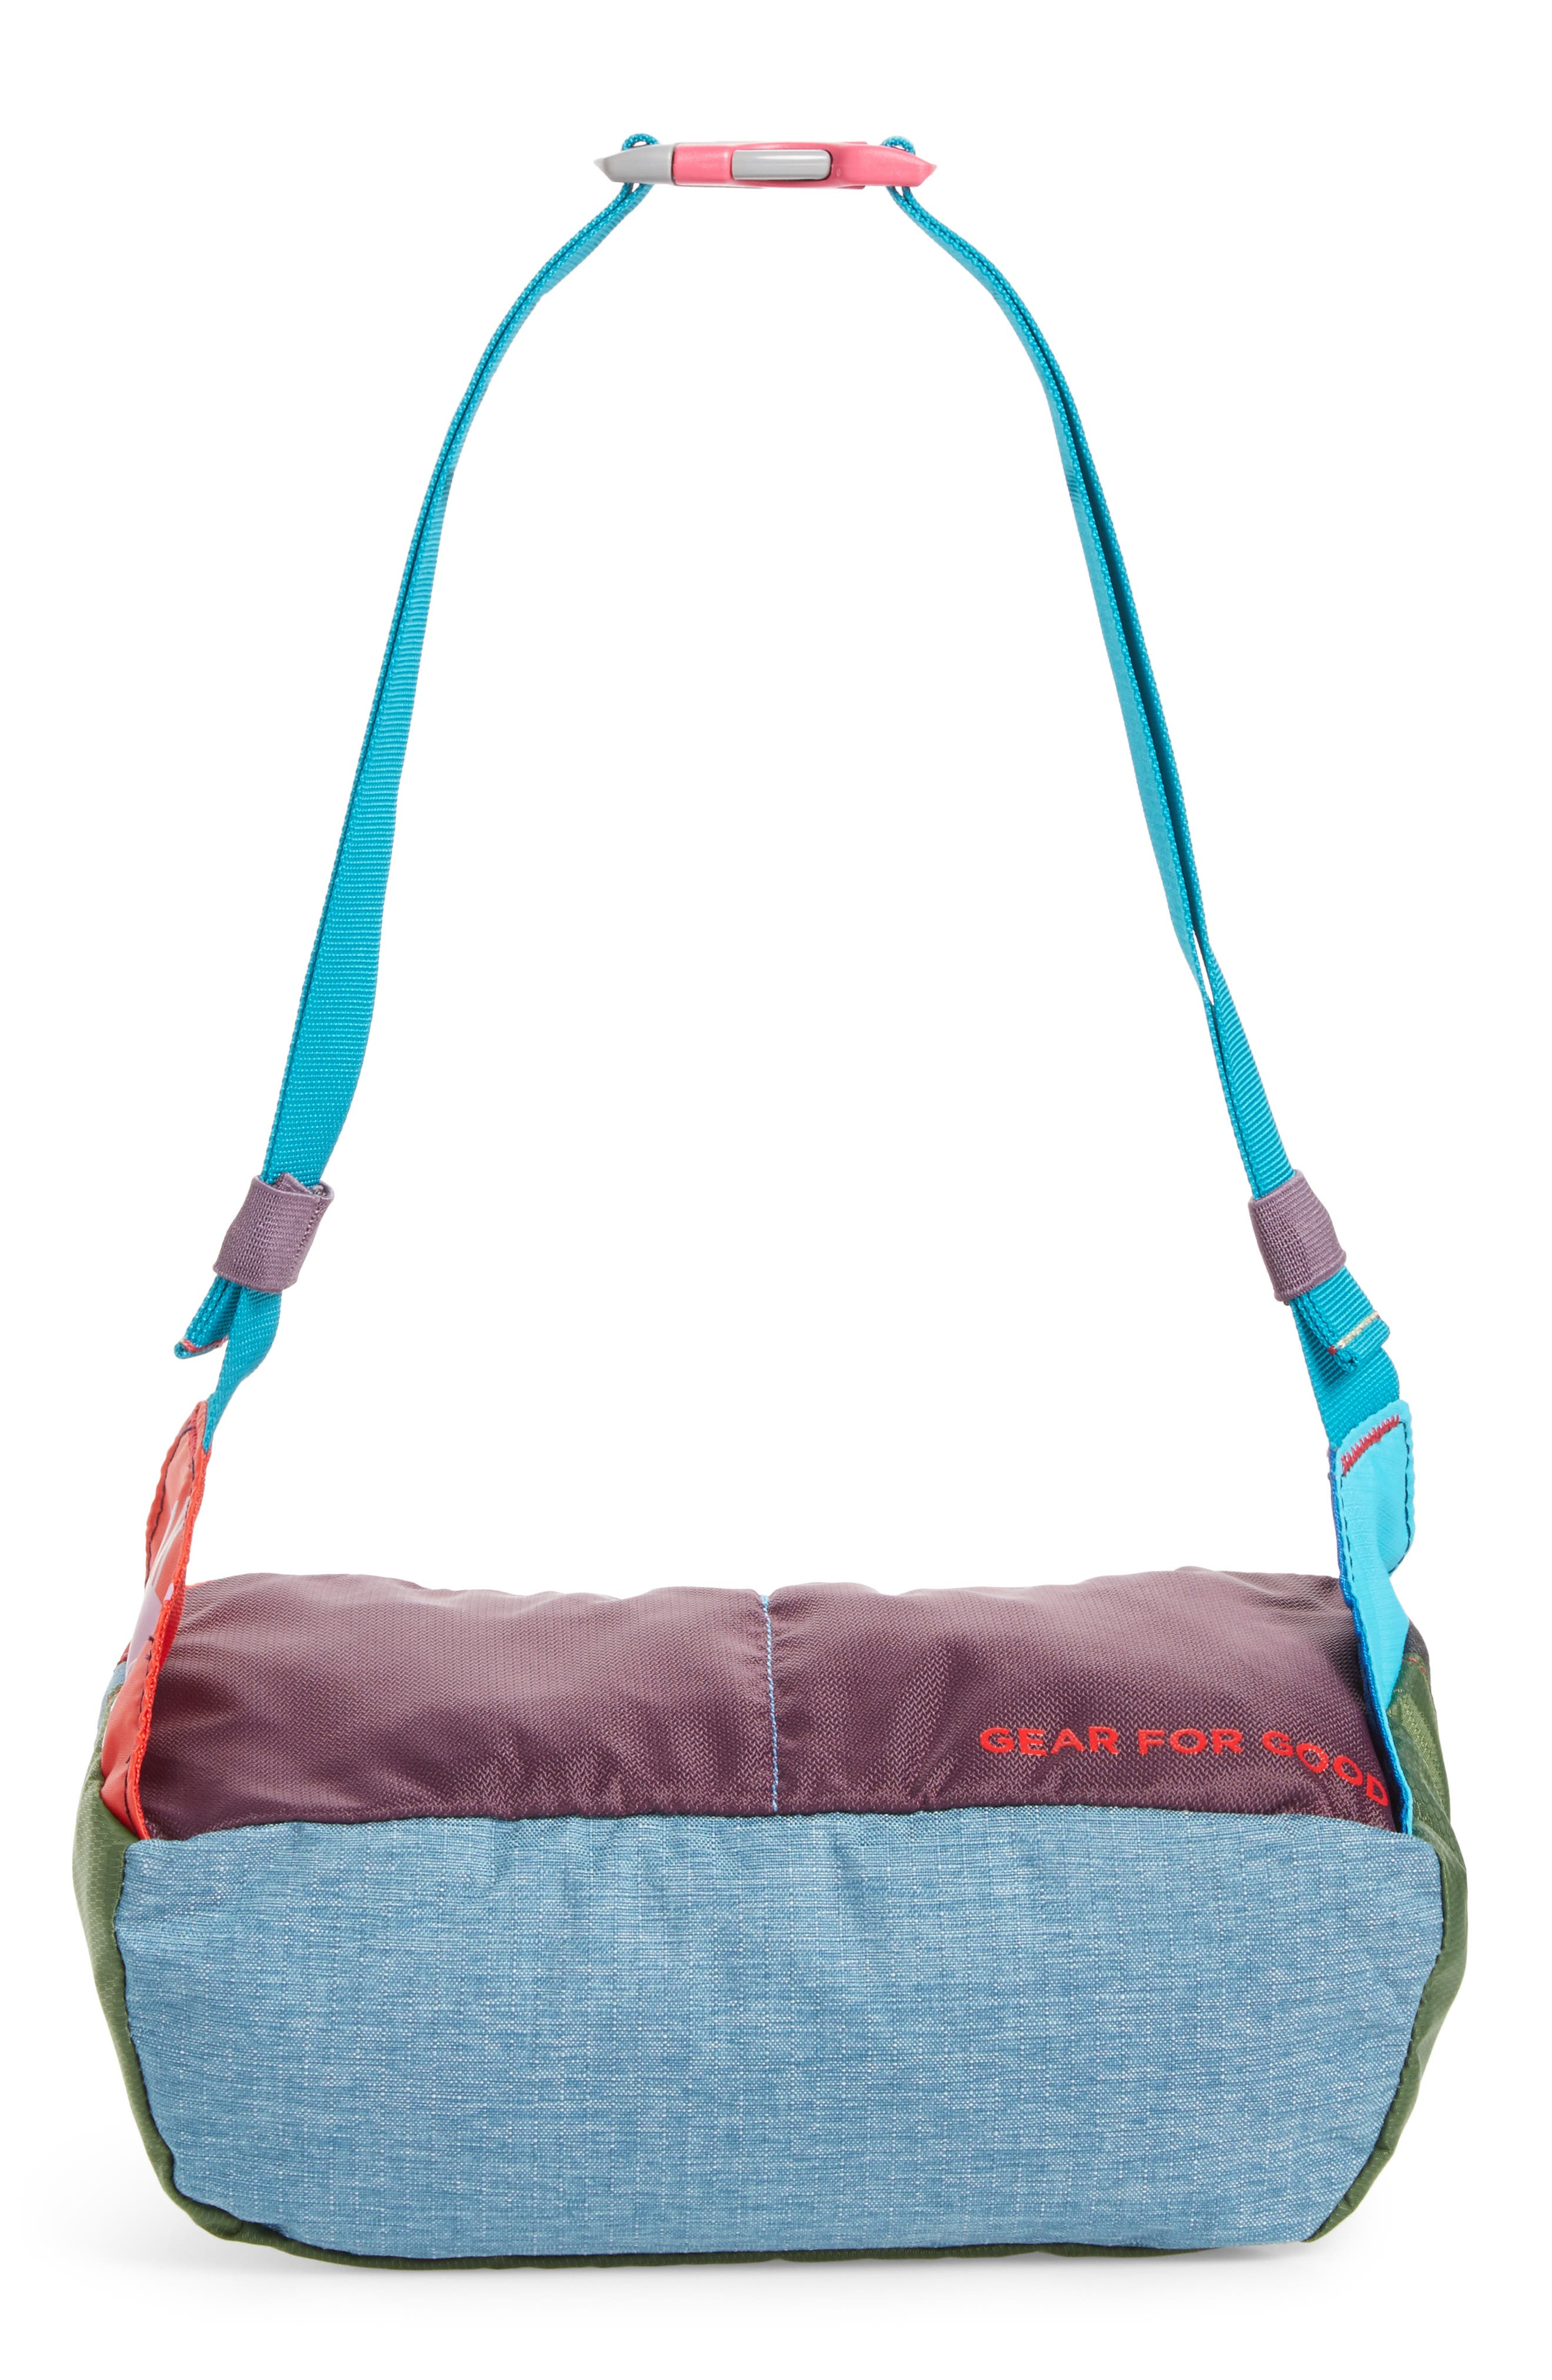 Bataan One of a Kind Duffel Fanny Pack,                             Alternate thumbnail 6, color,